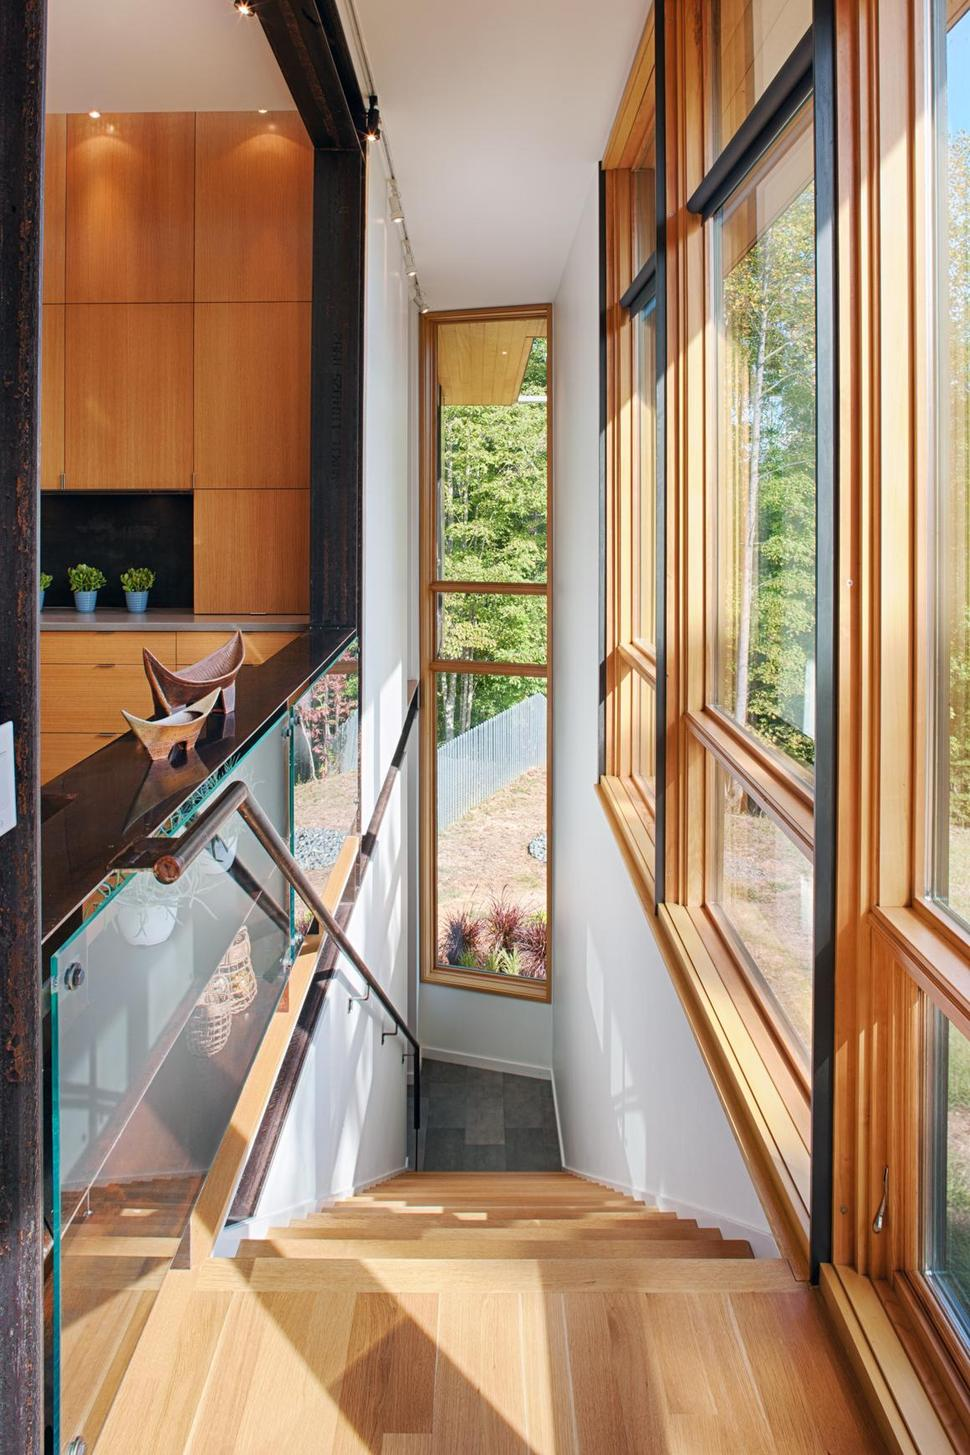 Design Define Silhouette minimalist silhouette and walls of glass define piedmont residence view in gallery 7